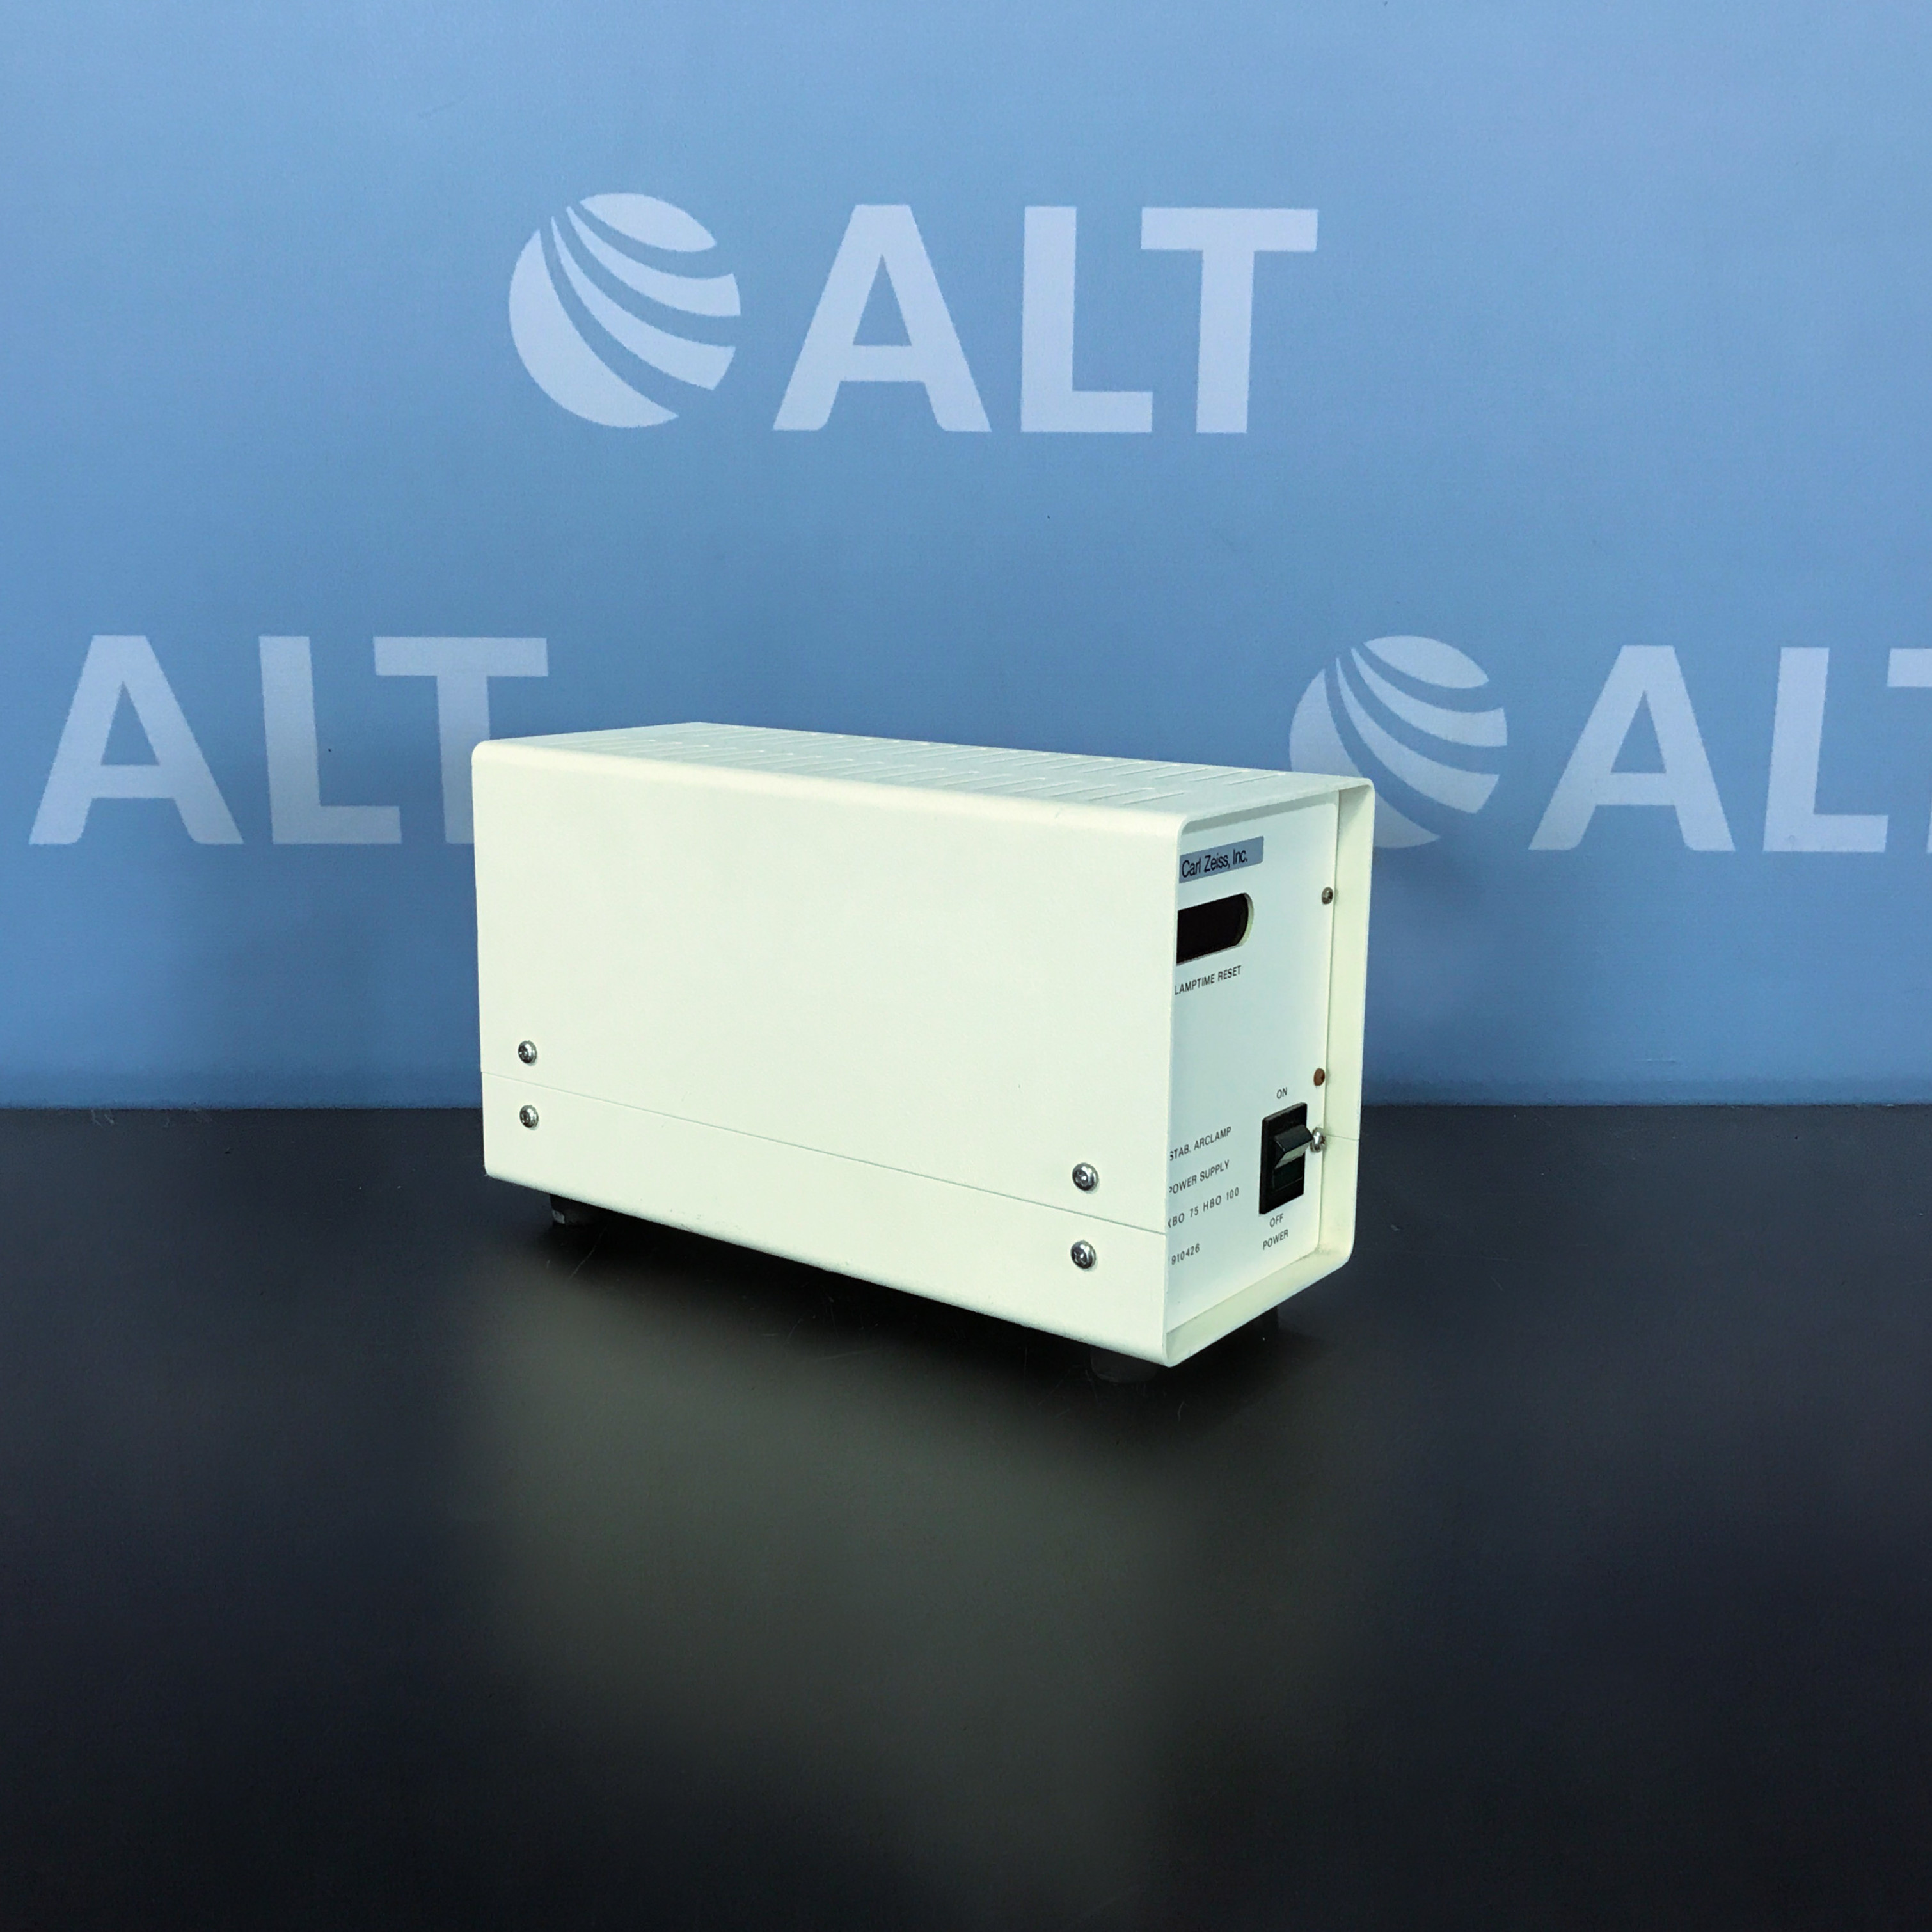 Carl Zeiss Stab. Arclamp Power Supply P/N 910426 Image